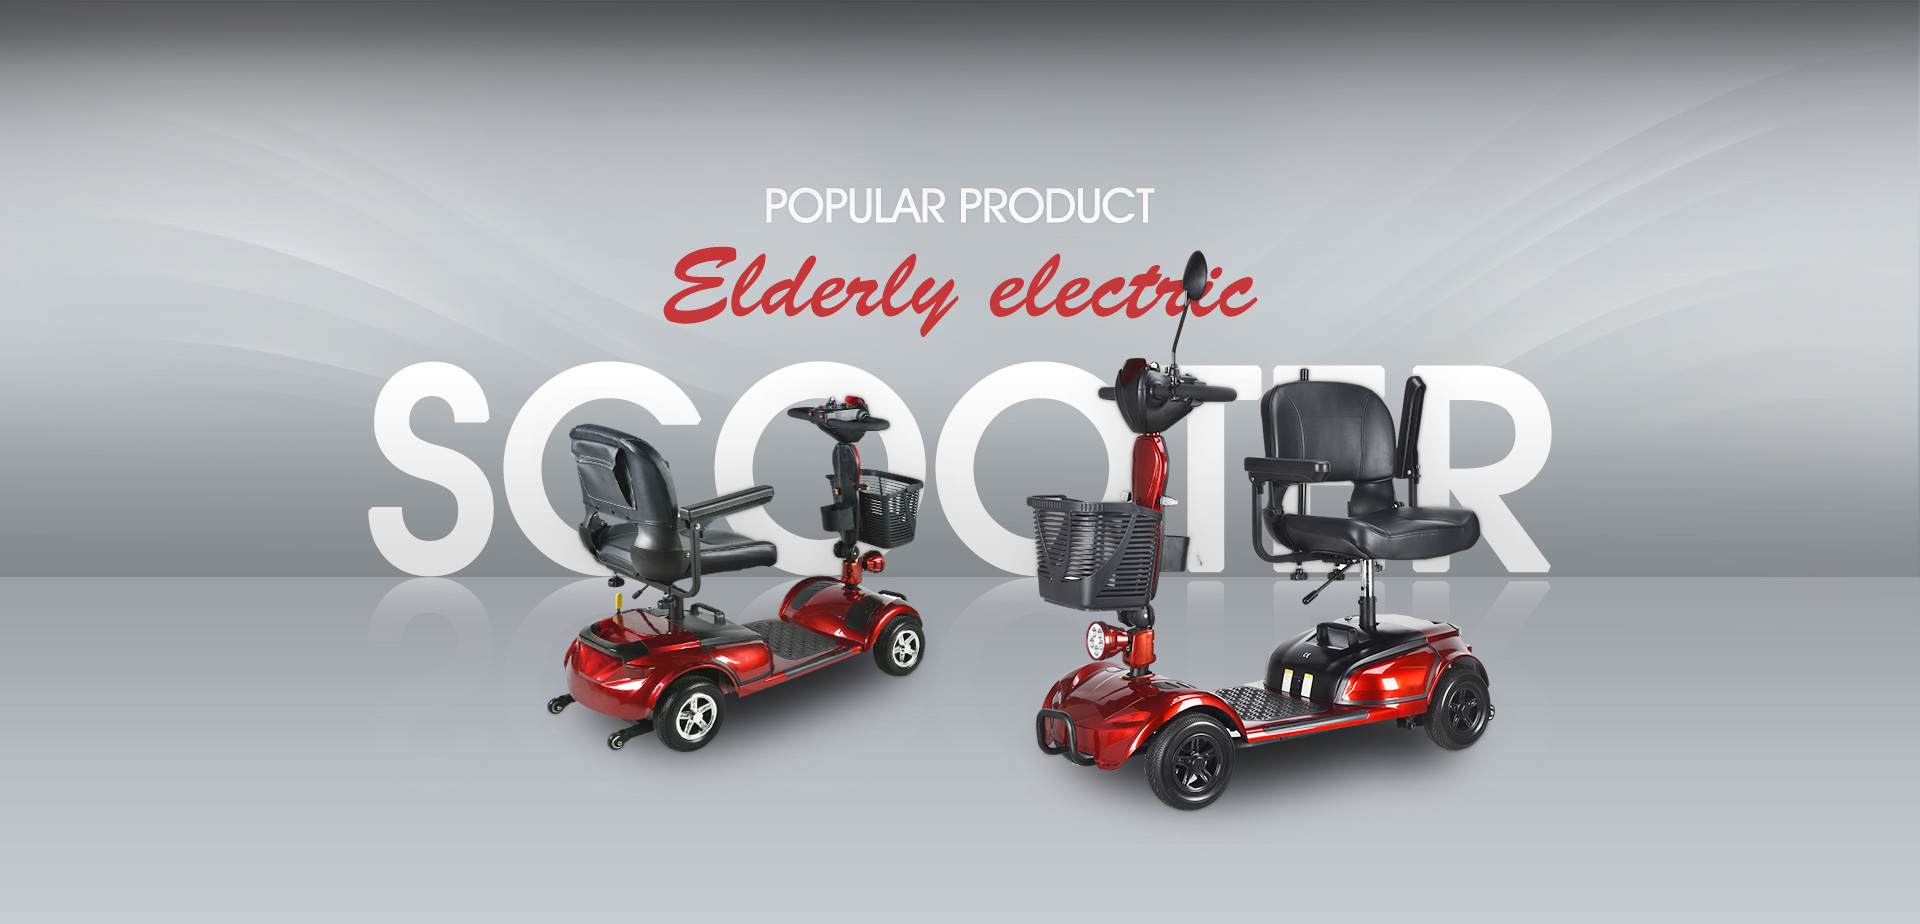 Elderly electric scooter